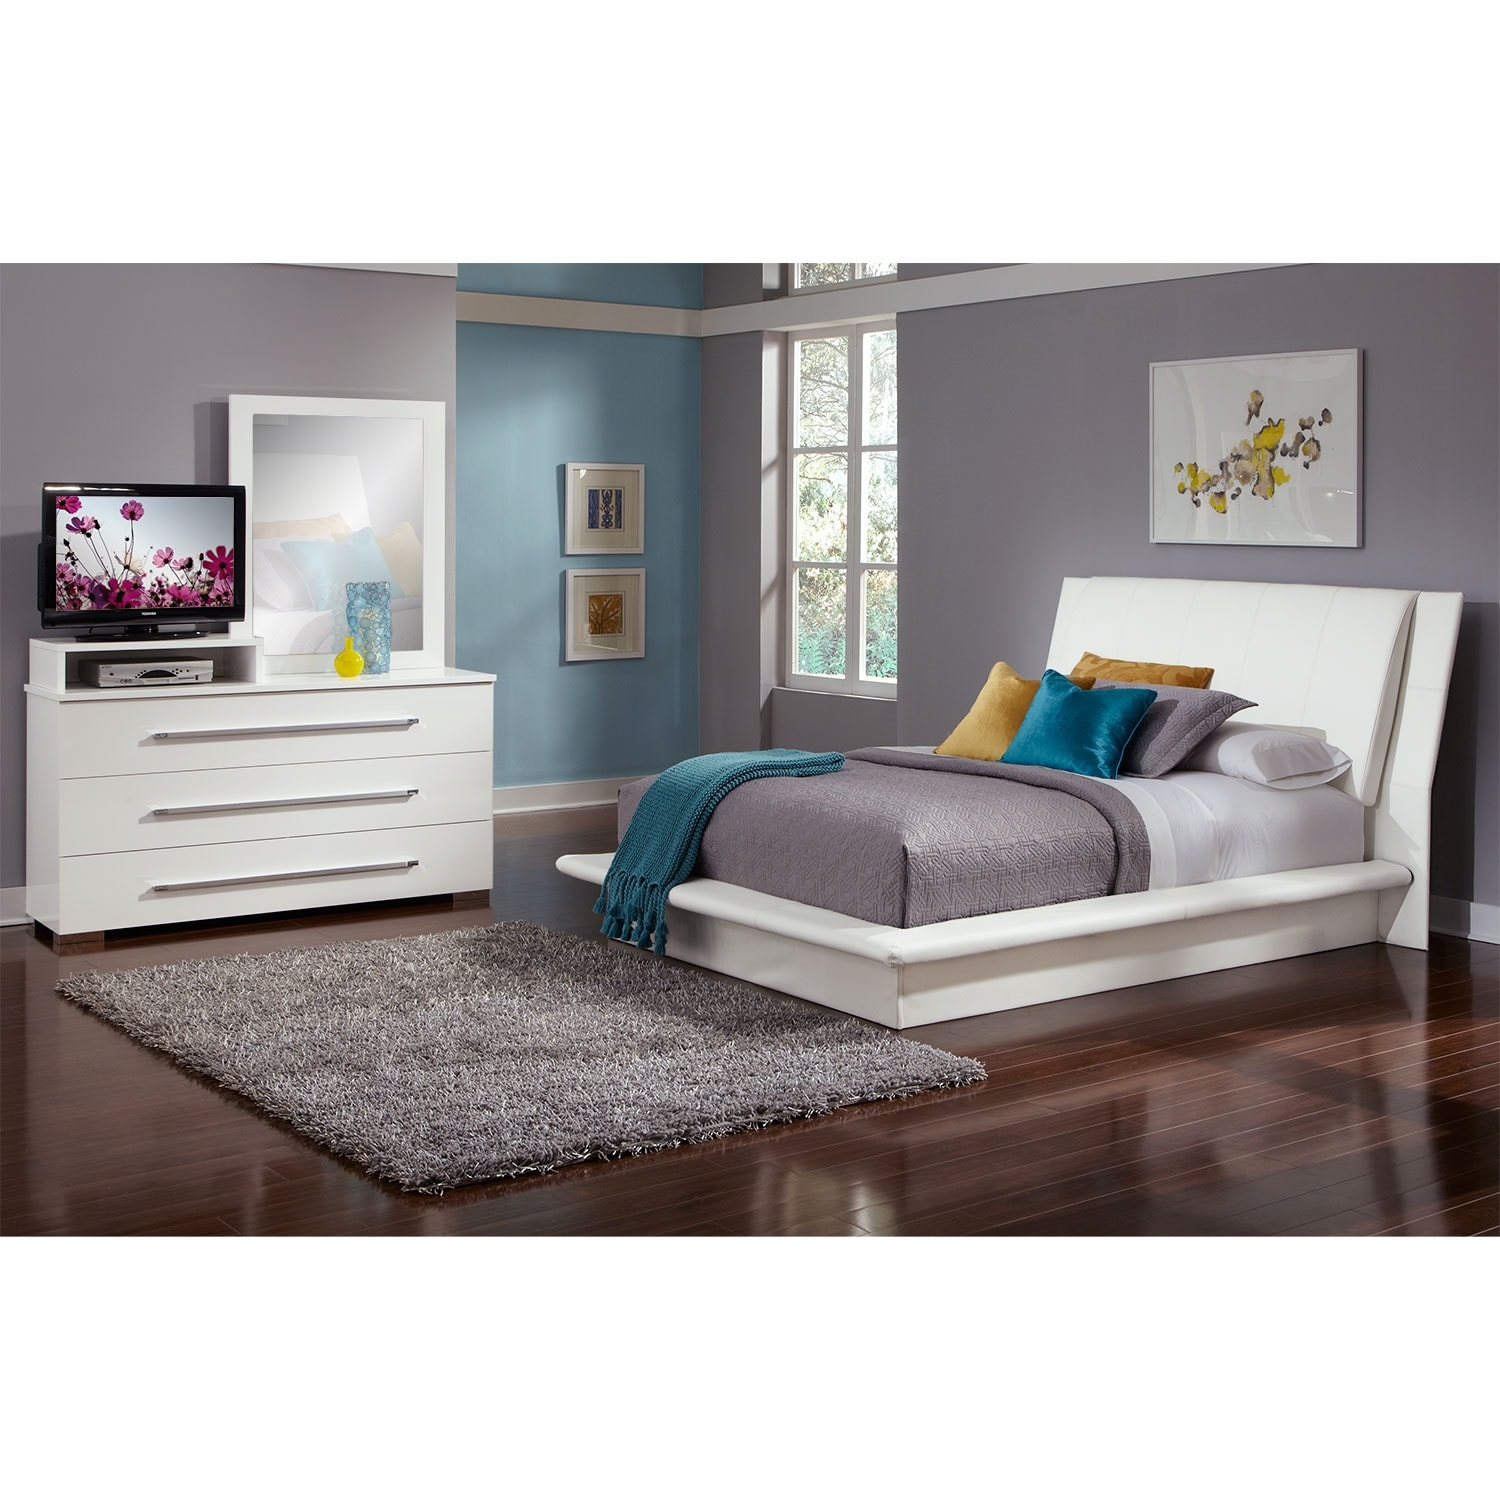 Bedroom Furniture - Dimora 5-Piece Queen Upholstered Bedroom Set with Media Dresser - White